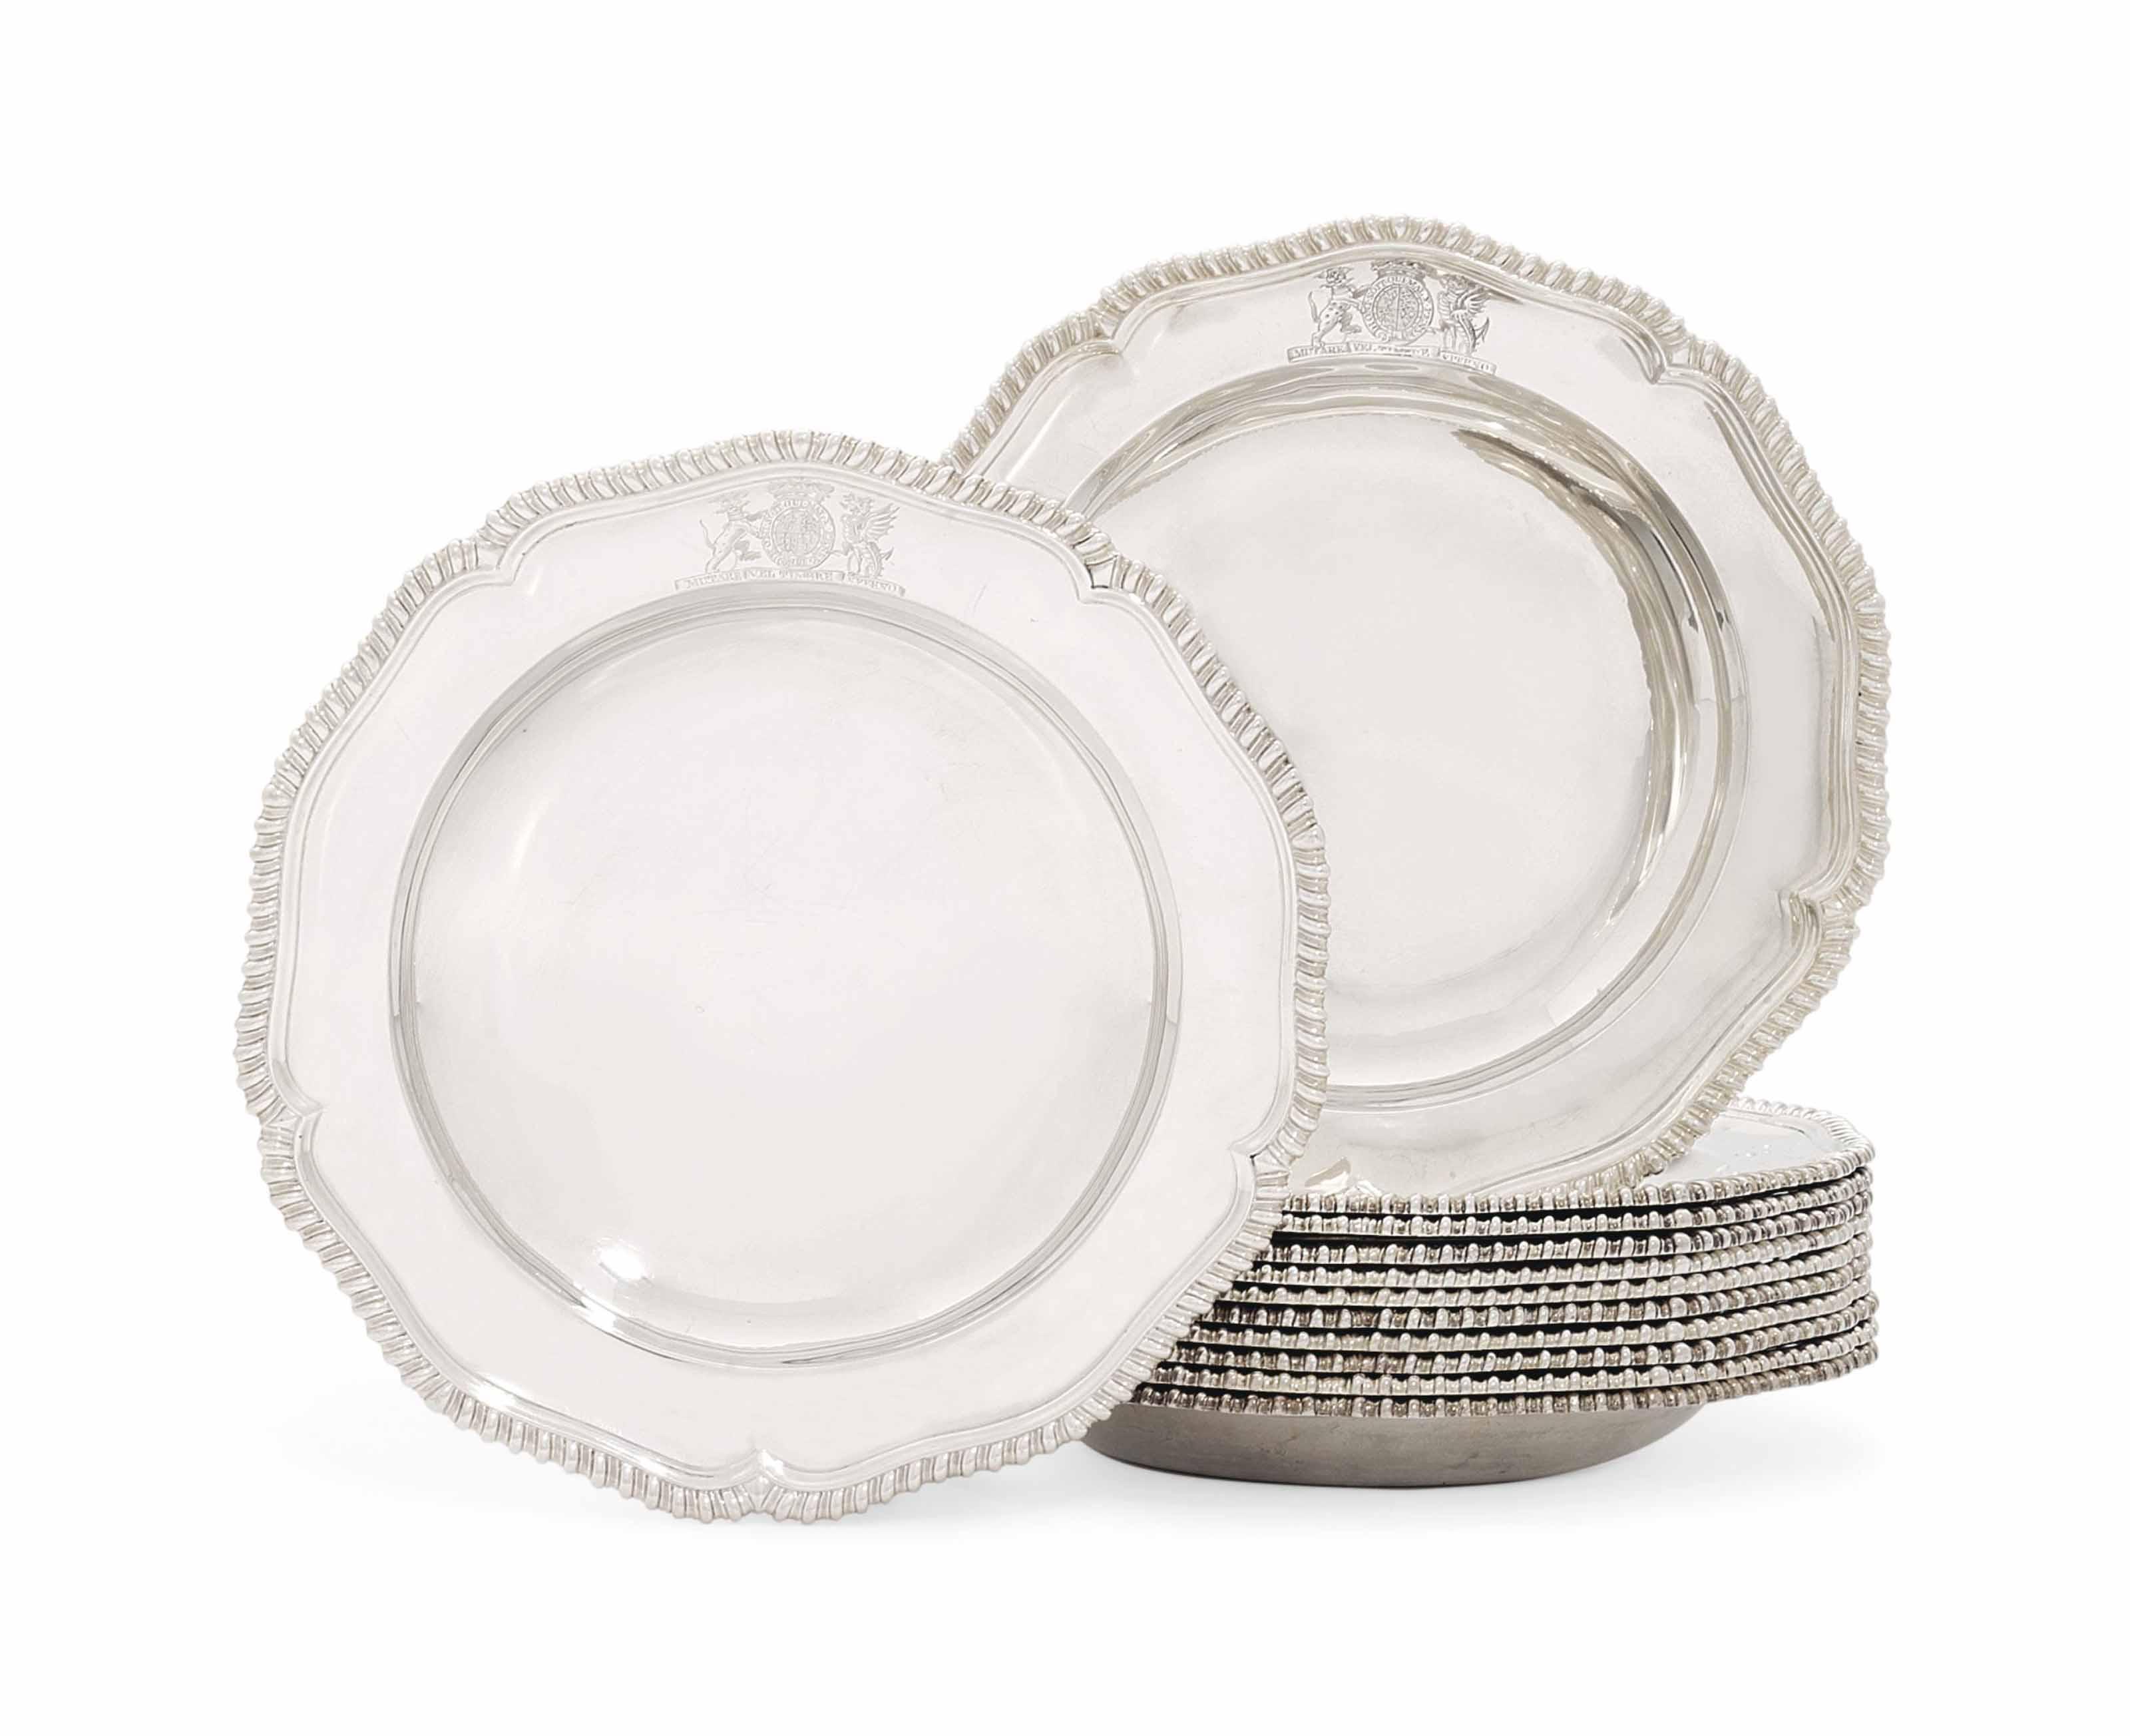 A SET OF TWELVE GEORGE II SILVER SOUP-PLATES